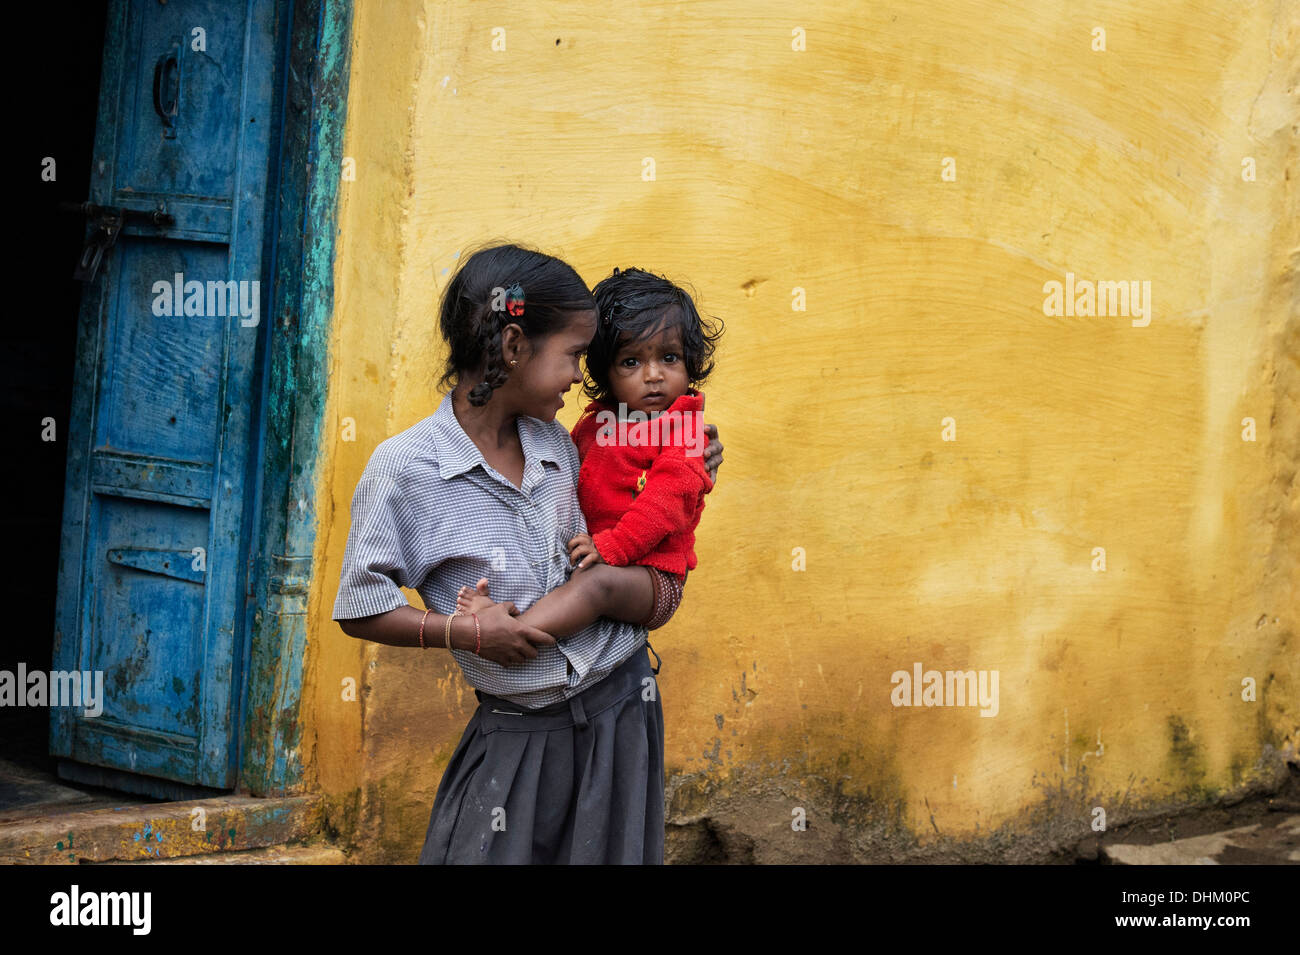 Young Indian girl holding her baby sister on her hip in a rural indian village. Andhra Pradesh, India - Stock Image